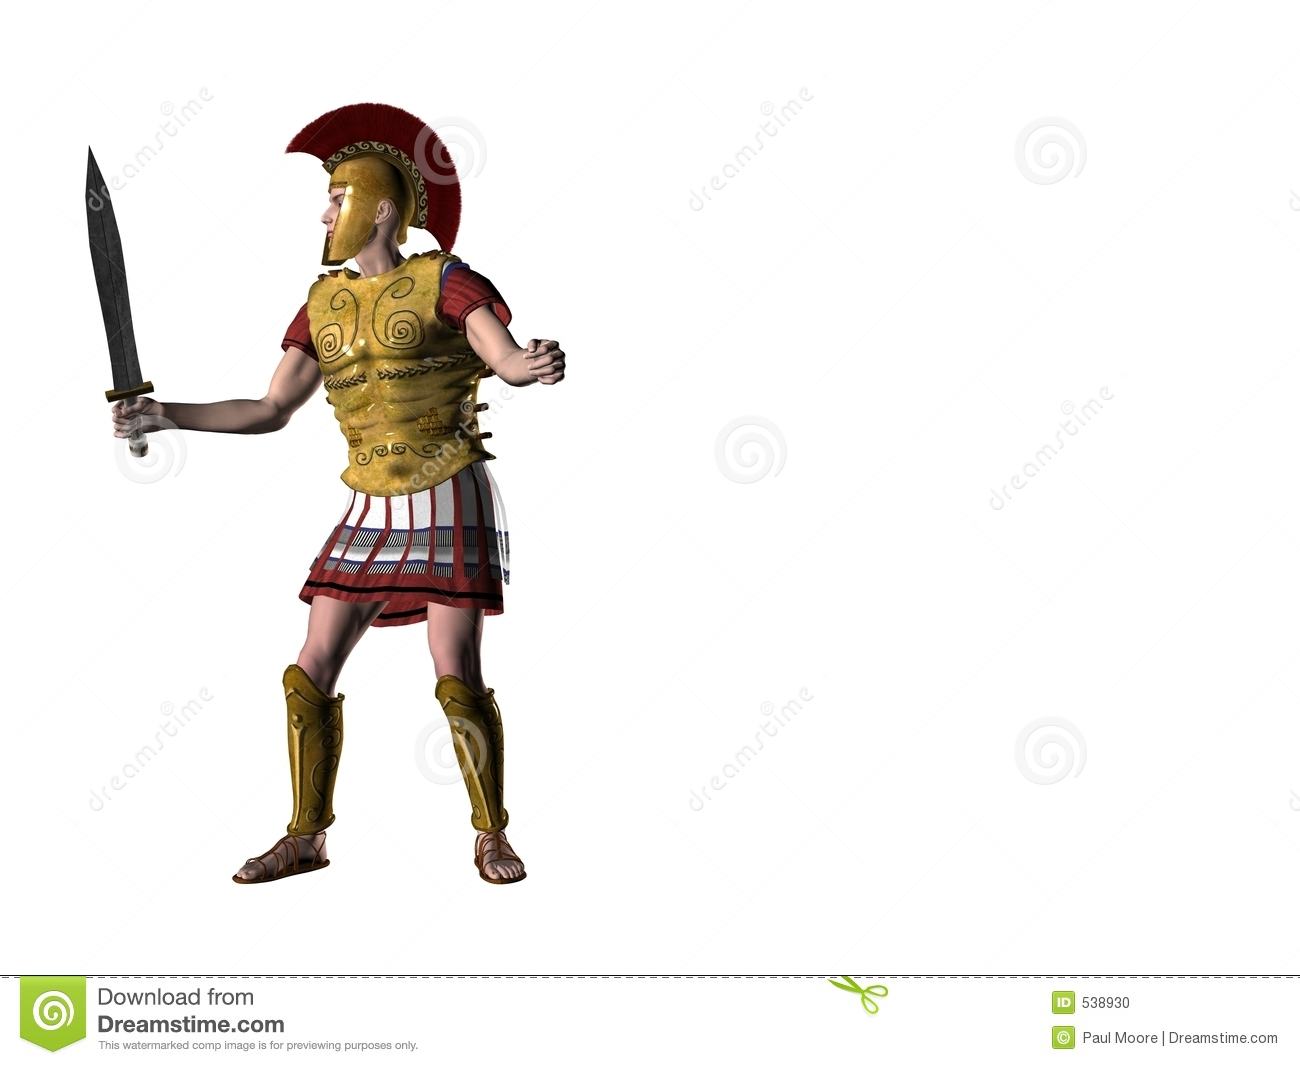 Greek Warrior 1 Stock Photo - Image: 538930